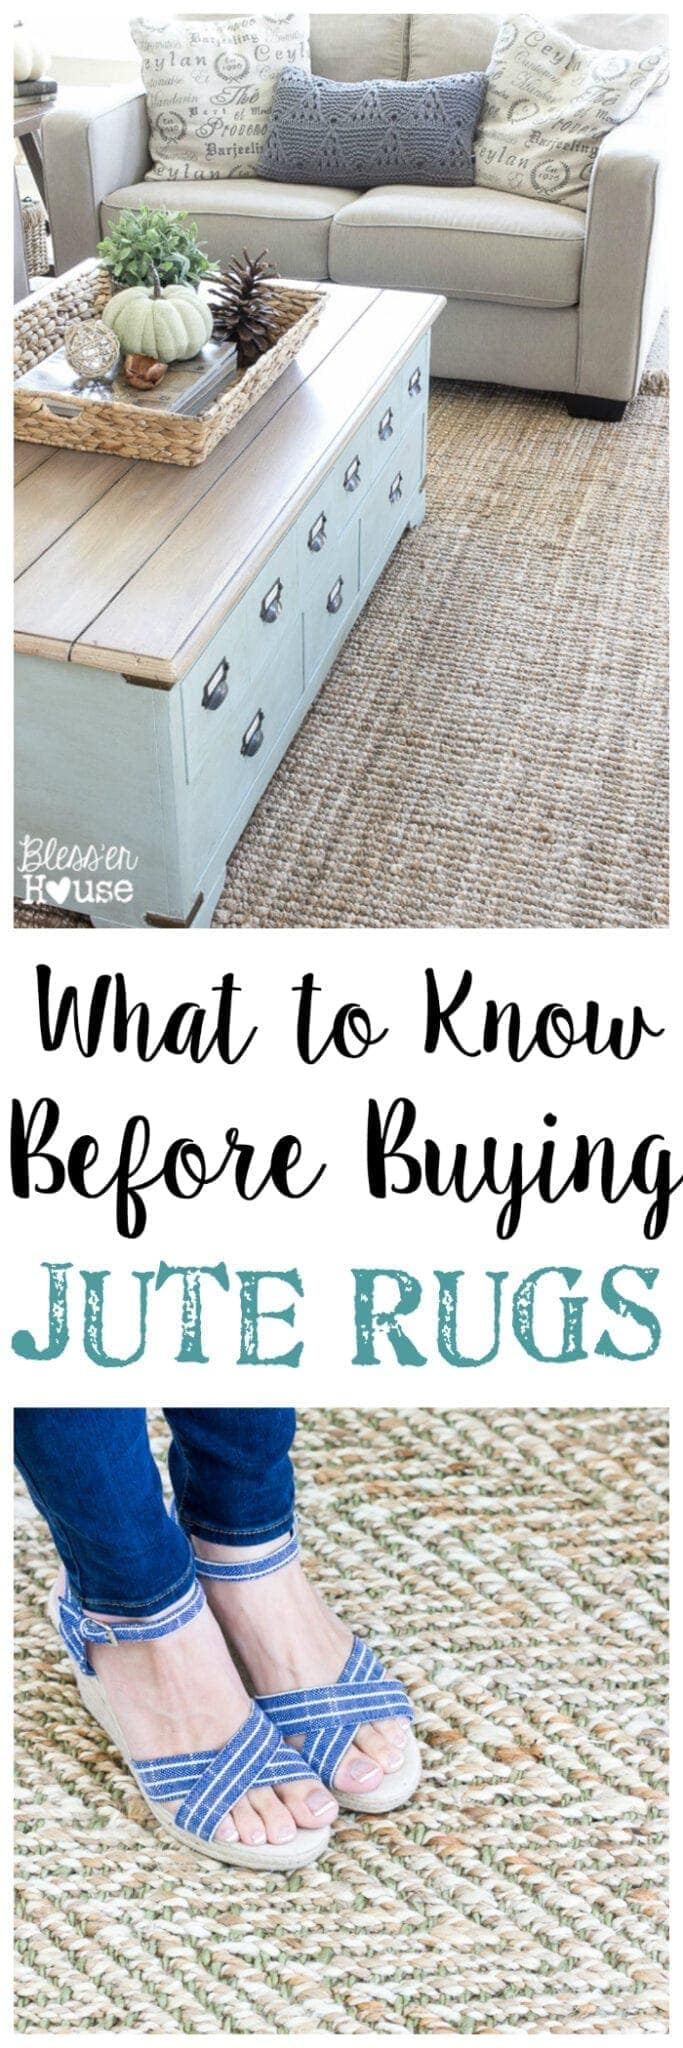 What To Know Before Buying Jute Rugs | Blesserhouse.com   A Totally Honest  Review